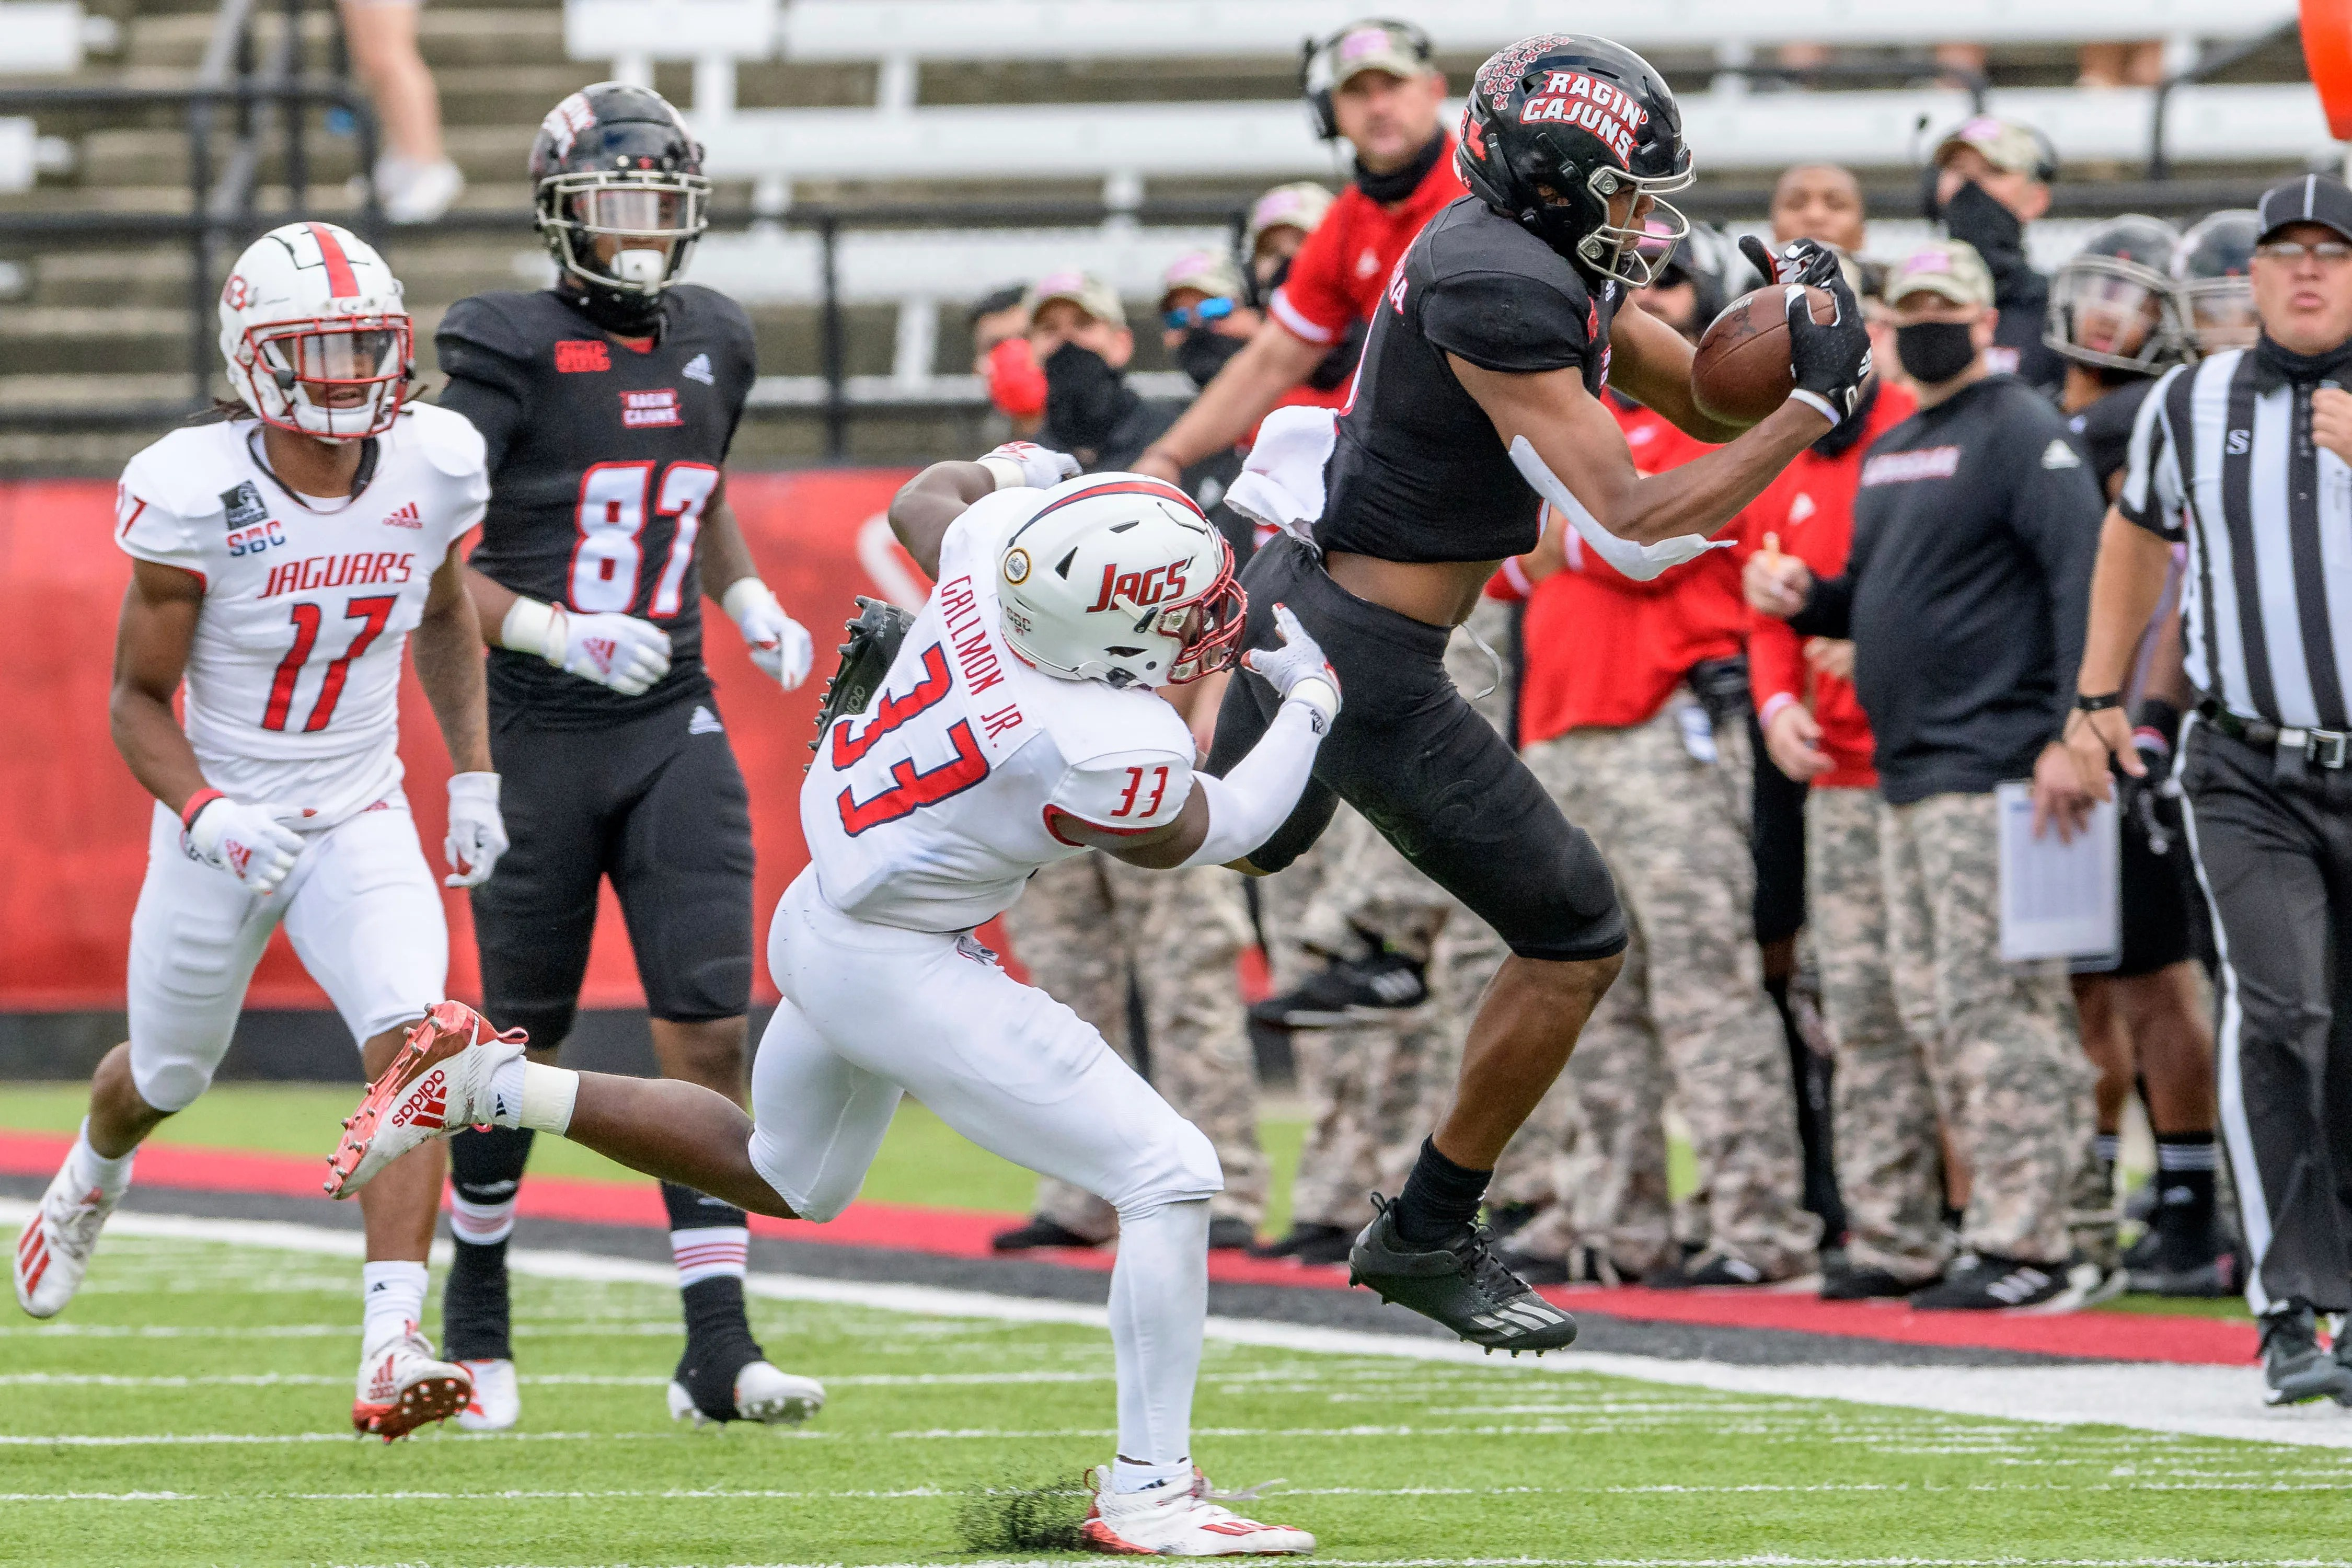 With Peter LeBlanc out, freshman receiver Kyren Lacy (right, in black), shown here making a catch in a win over South Alabama earlier this month, steps into a bigger role for the Ragin' Cajuns at UL Monroe on Saturday.